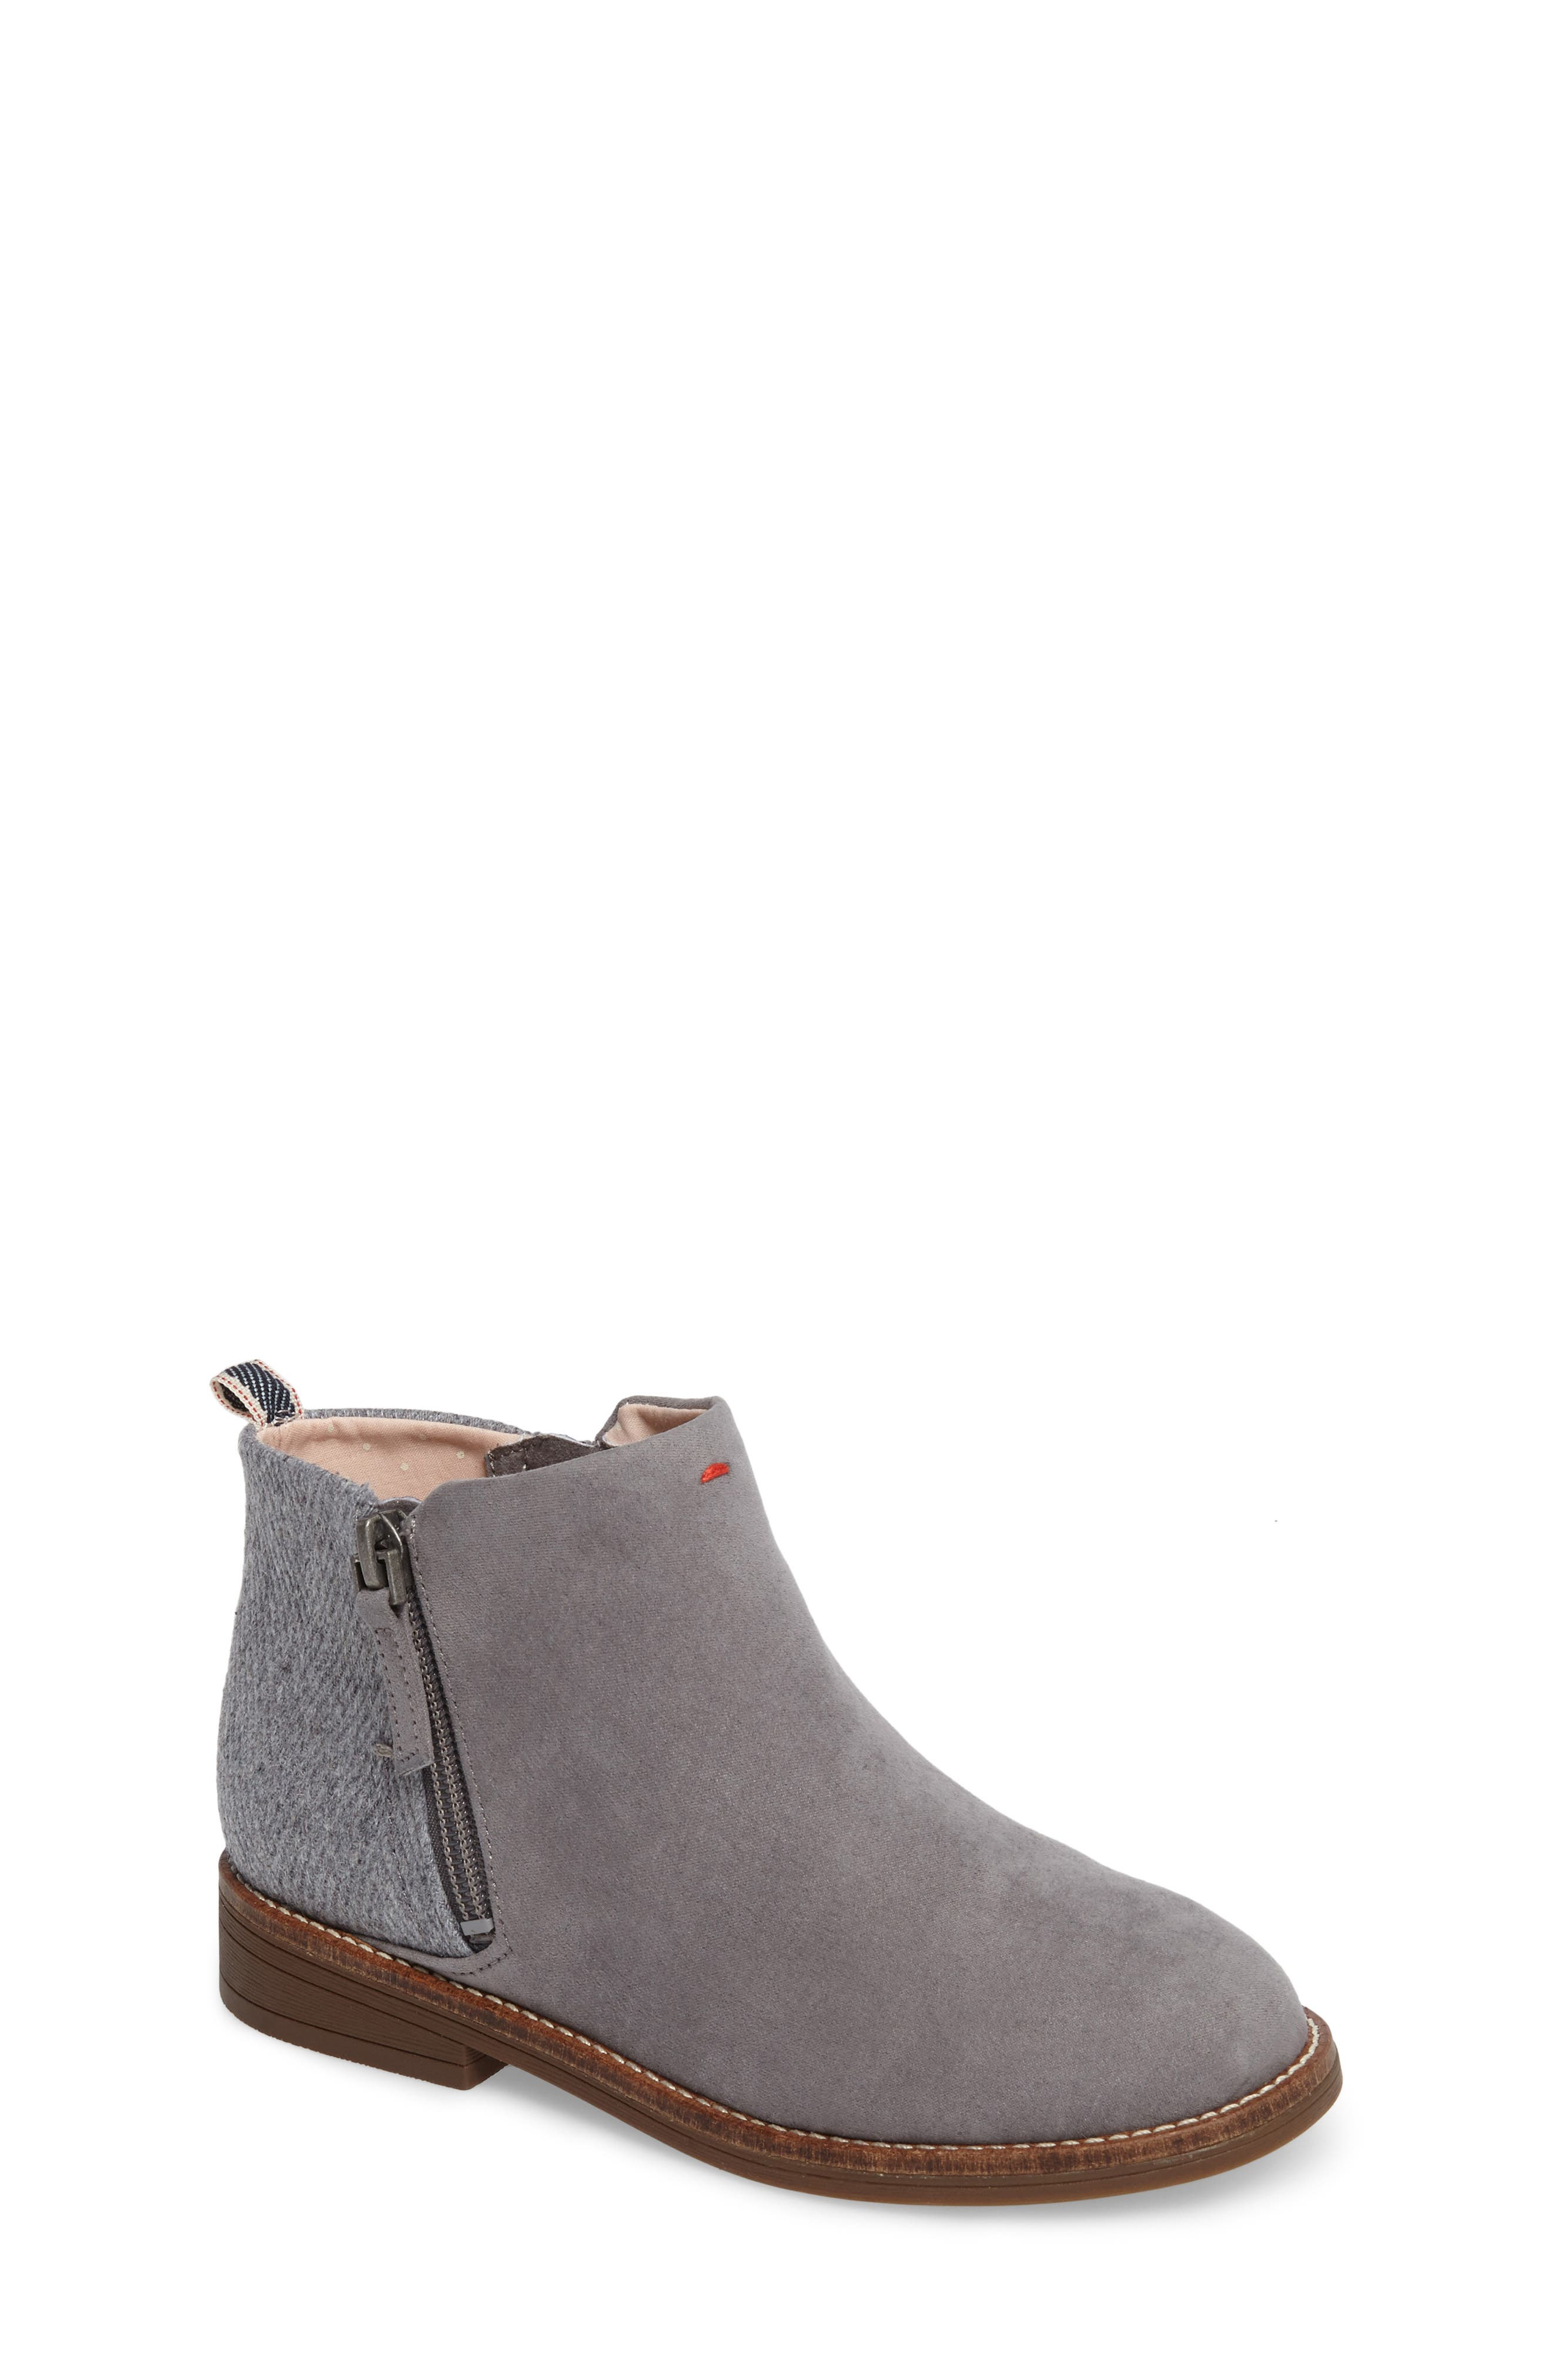 Alternate Image 1 Selected - ED Ellen DeGeneres Glynn Low Zip Bootie (Toddler, Little Kid & Big Kid)